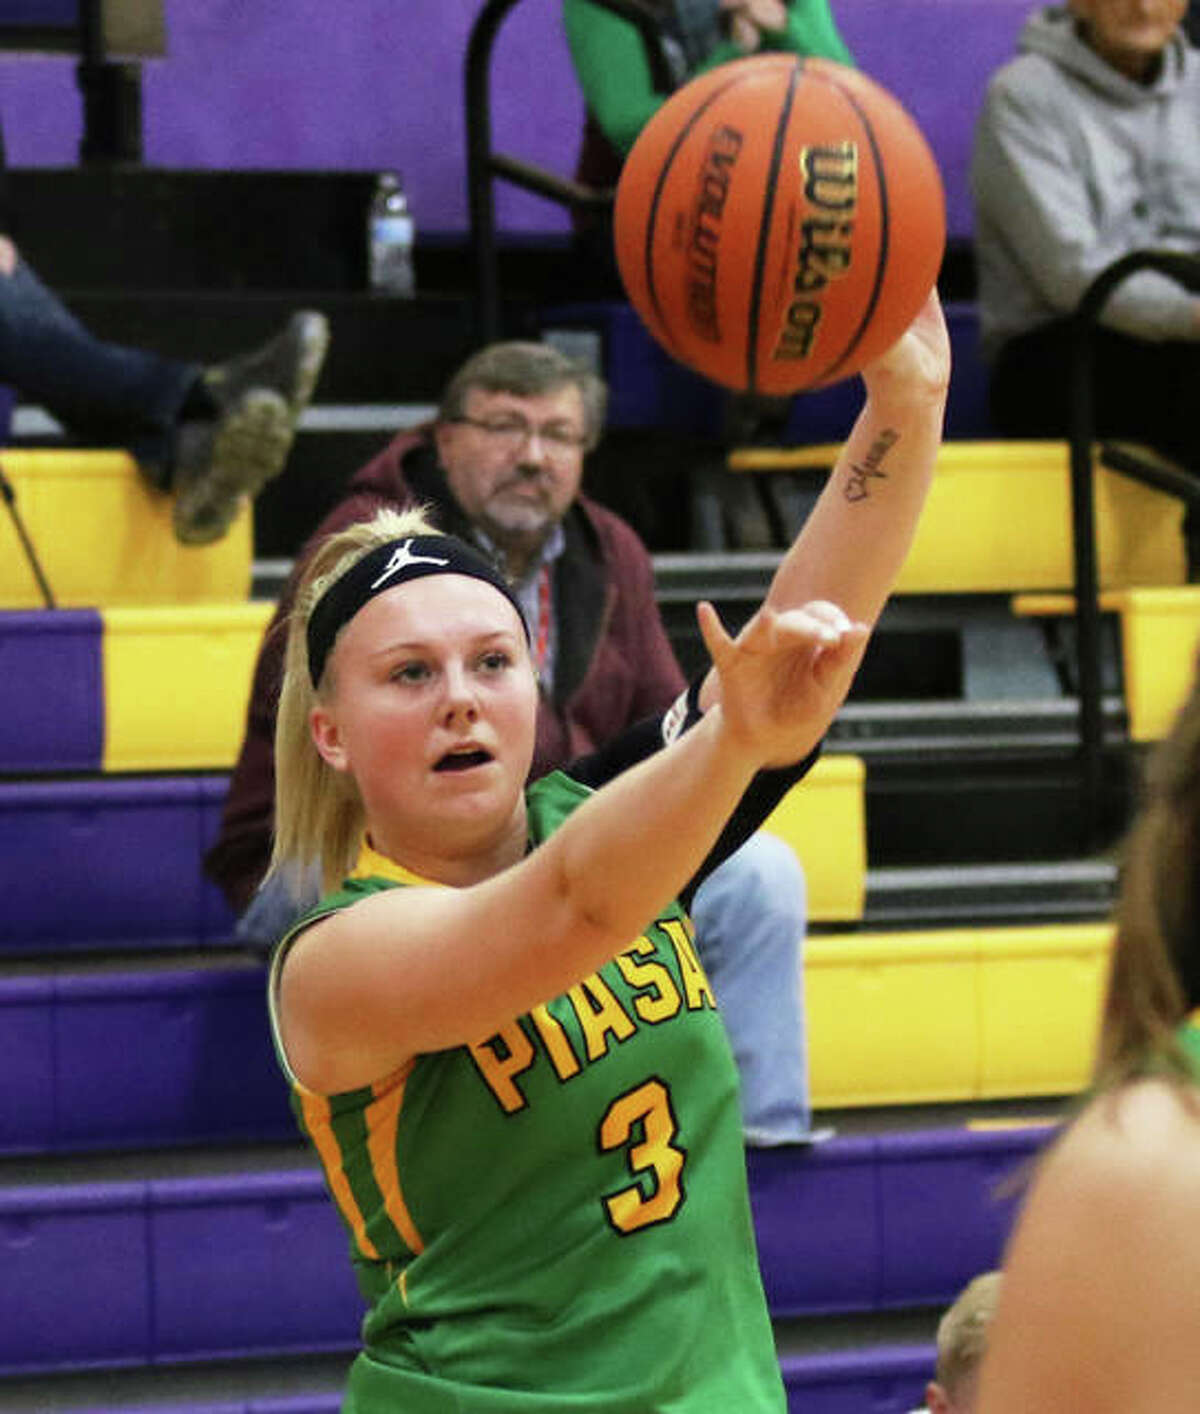 Southwestern's Addie Green, shown shooting a 3-pointer in a game last season, scored 10 points in the Piasa Birds' win over Brussels on Tuesday night in Piasa.